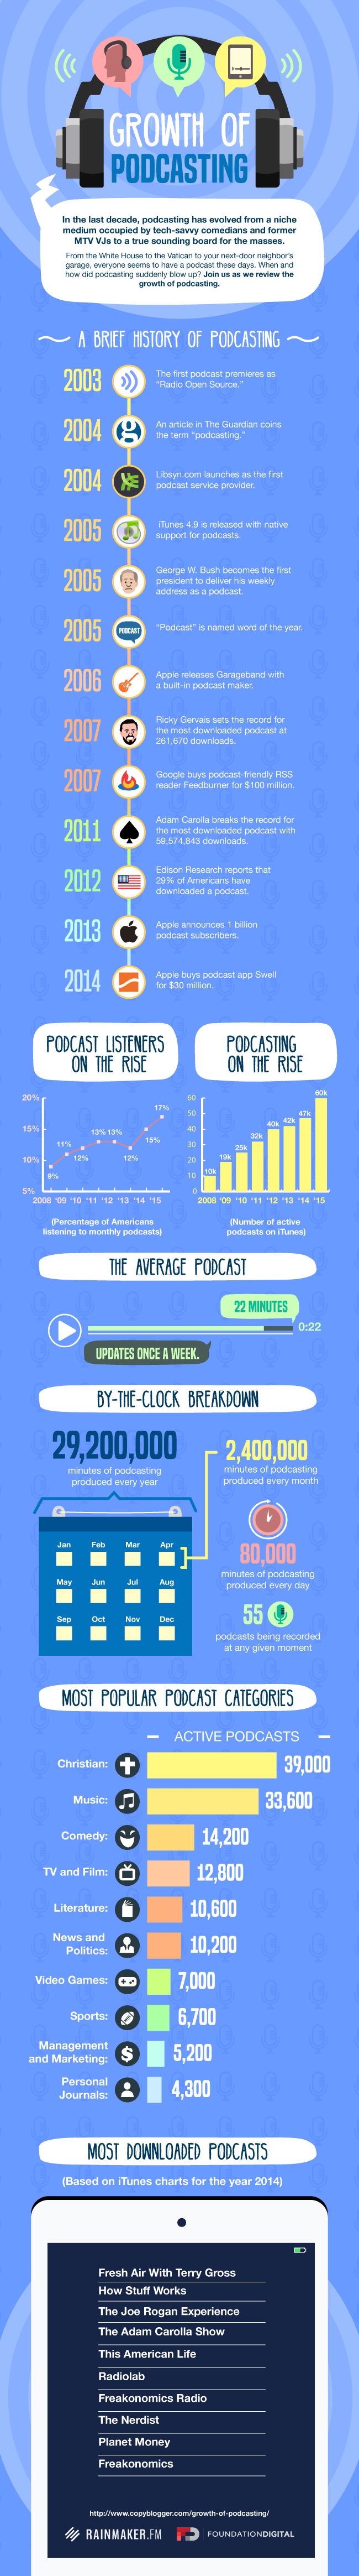 copyblogger-growth-of-podcasting-infographic